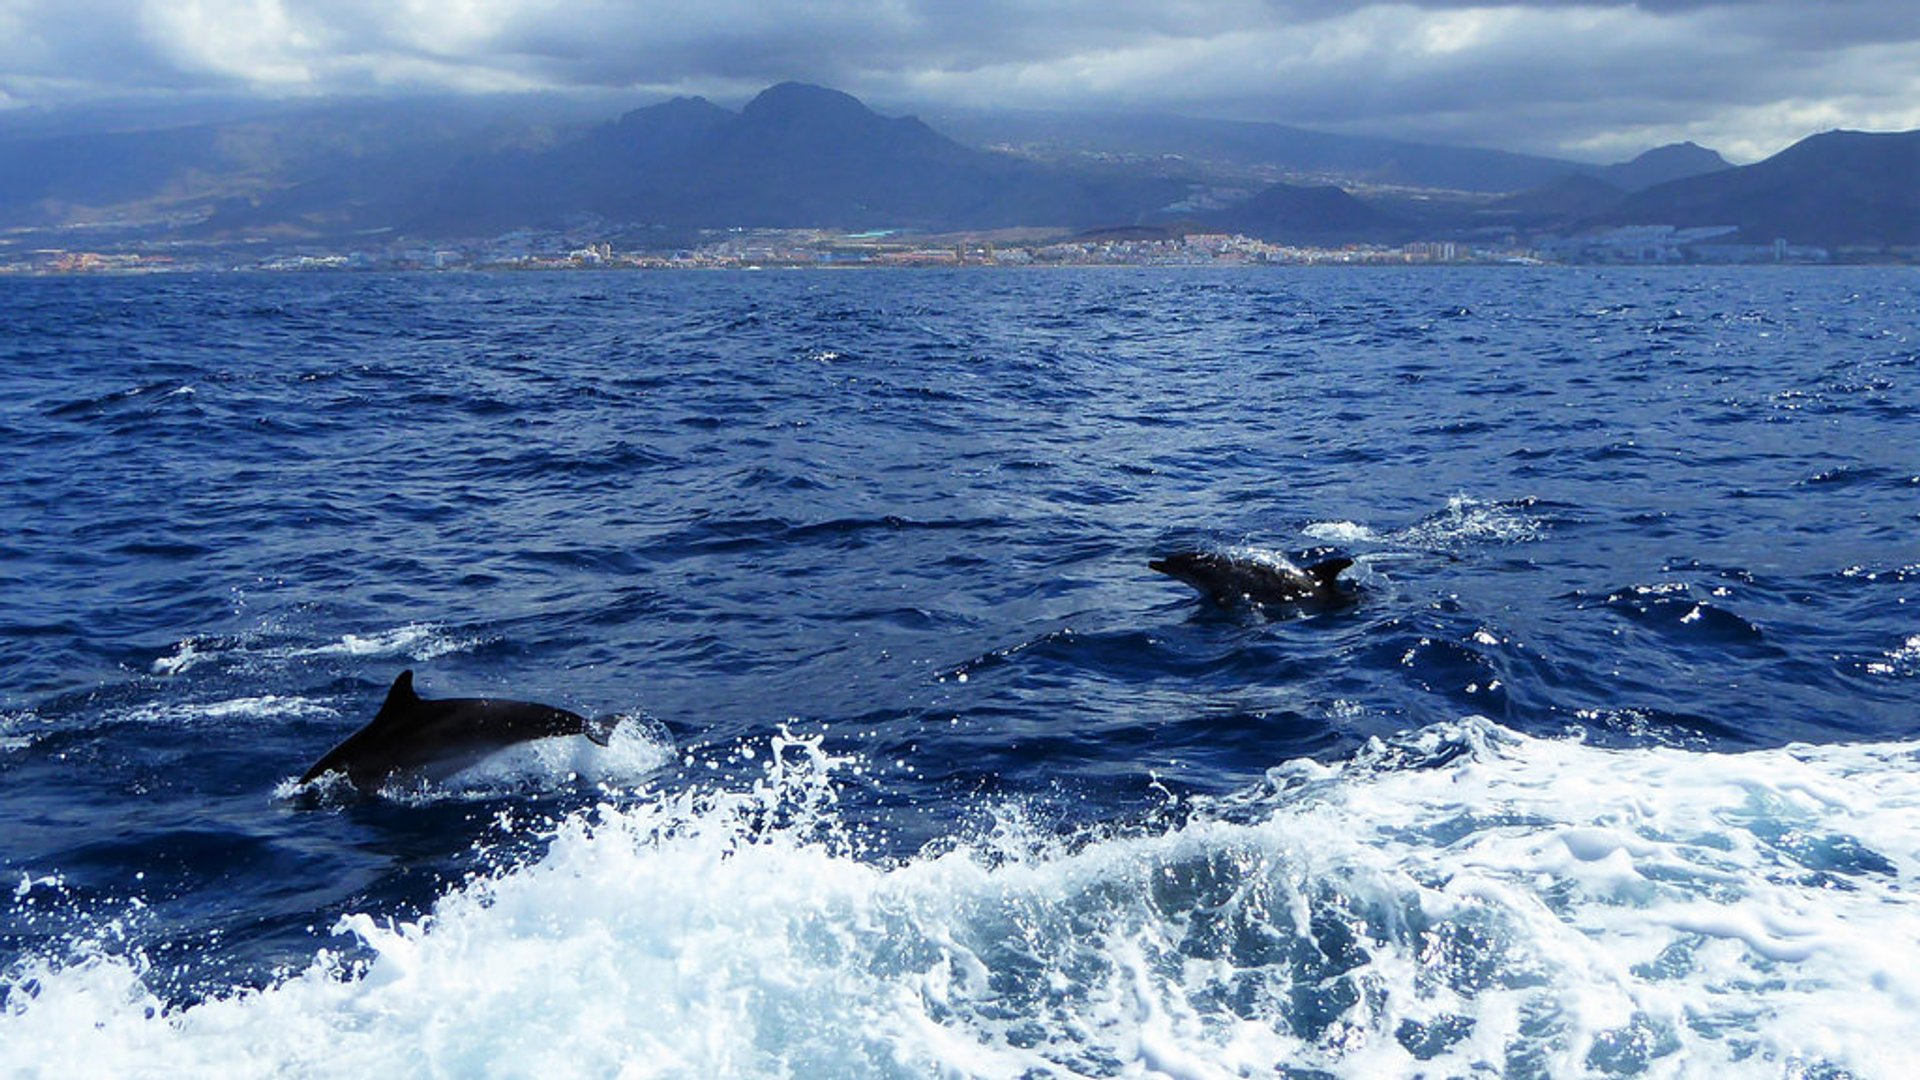 Whale and Dolphin Watching in Canary Islands - Best Season 2020